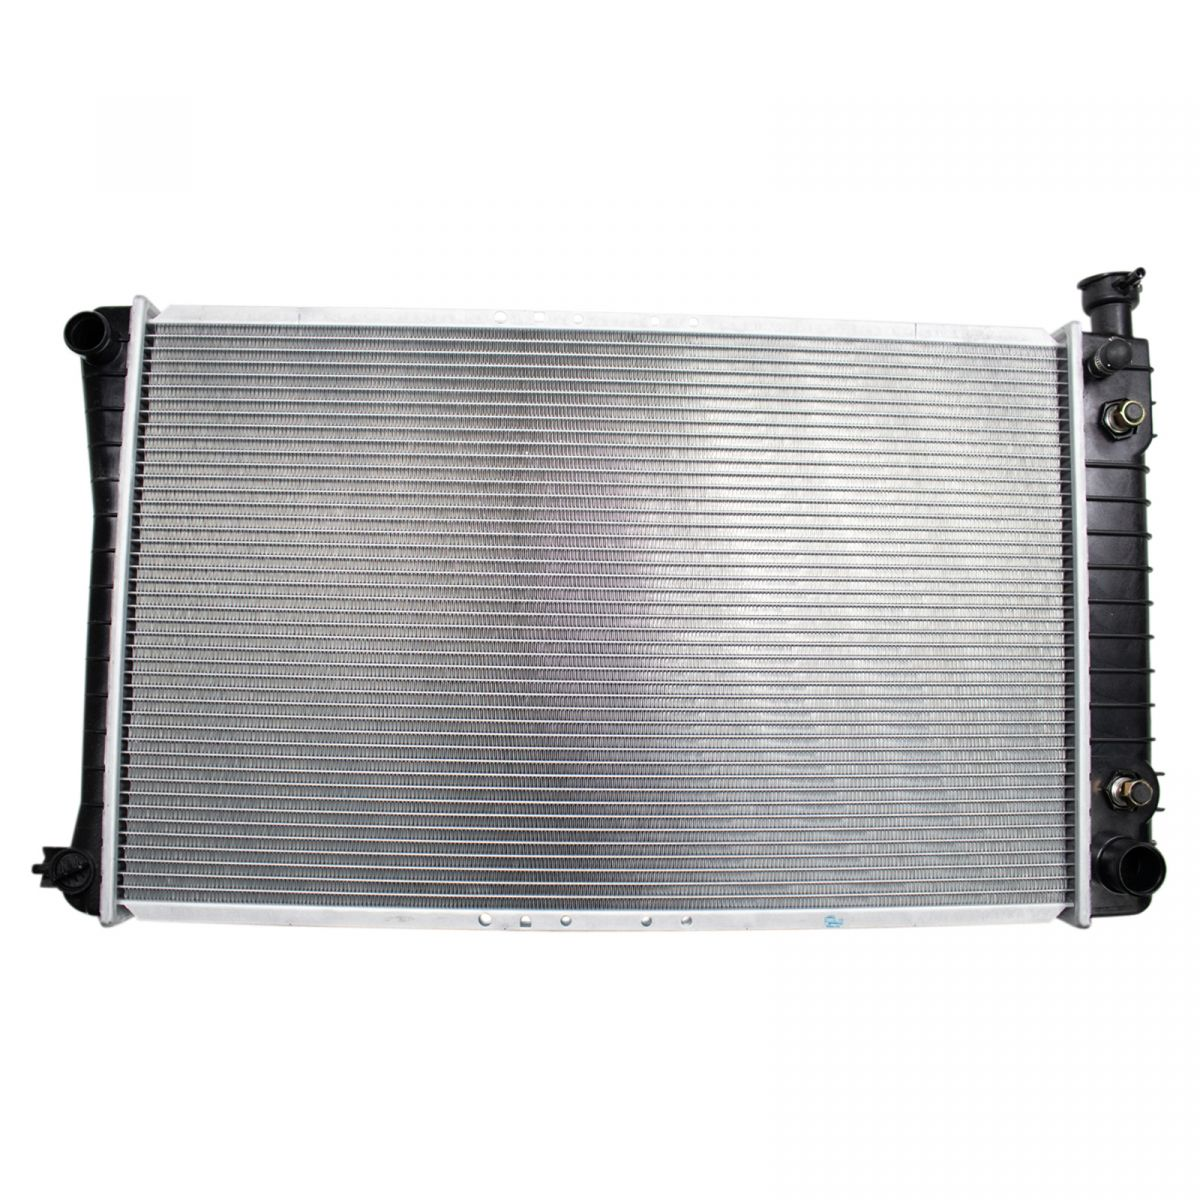 Sbc Oil Cooler : Radiator new for chevy gmc c k pickup truck suburban w o